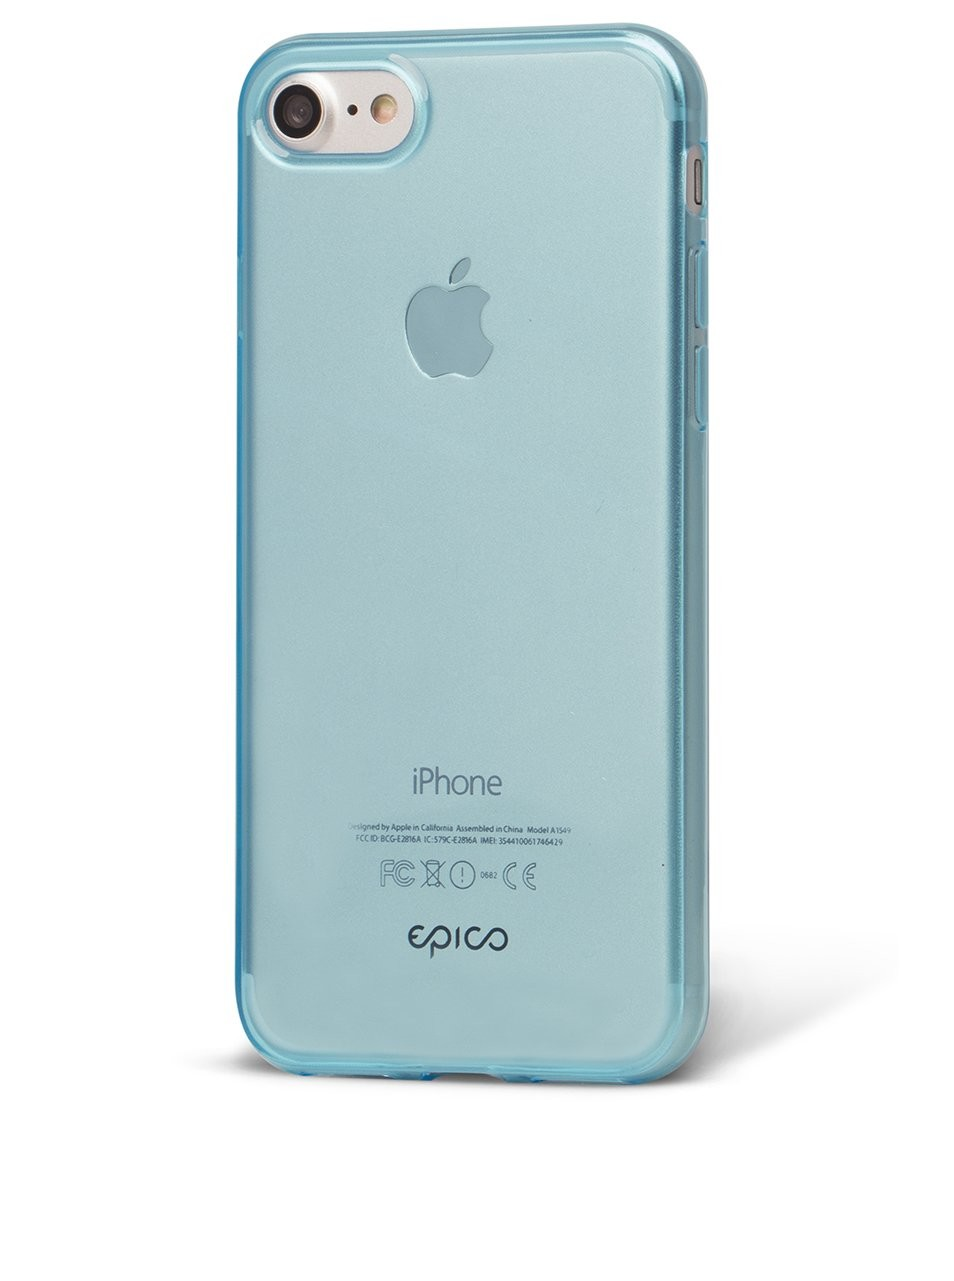 EPICO TWIGGY GLOSS for iPhone 7 plus, blue